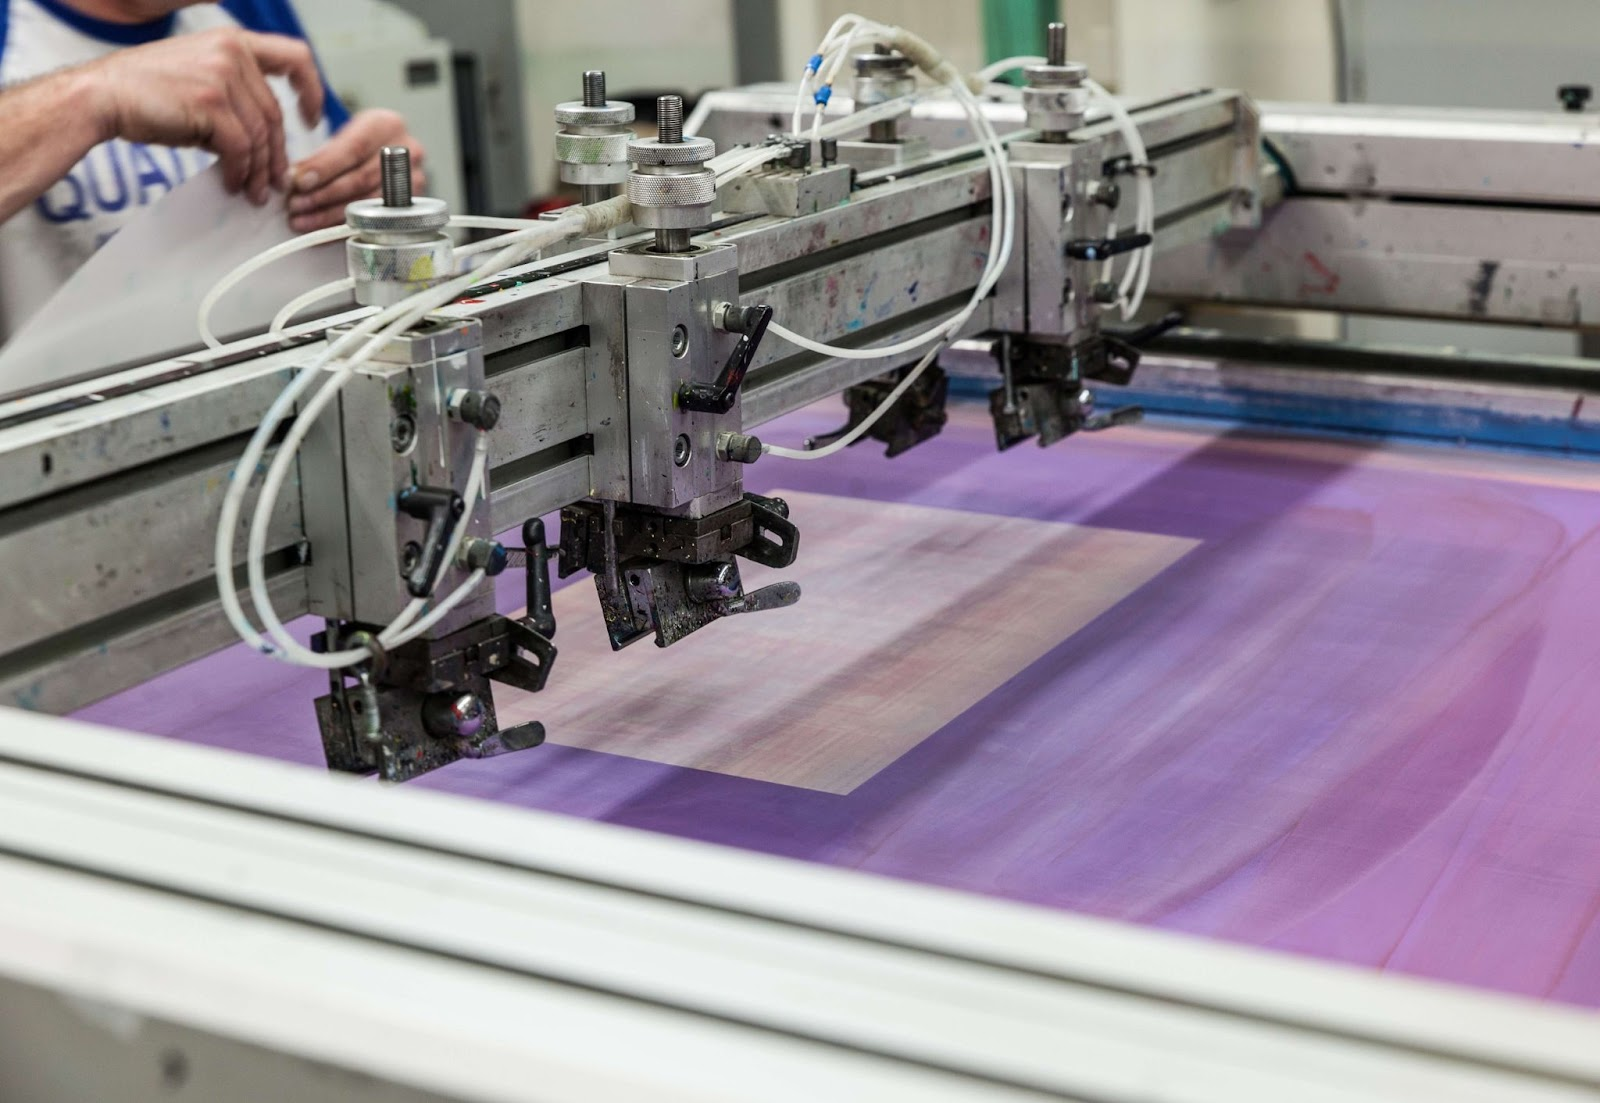 Man operating printing machine and monitoring for quality control